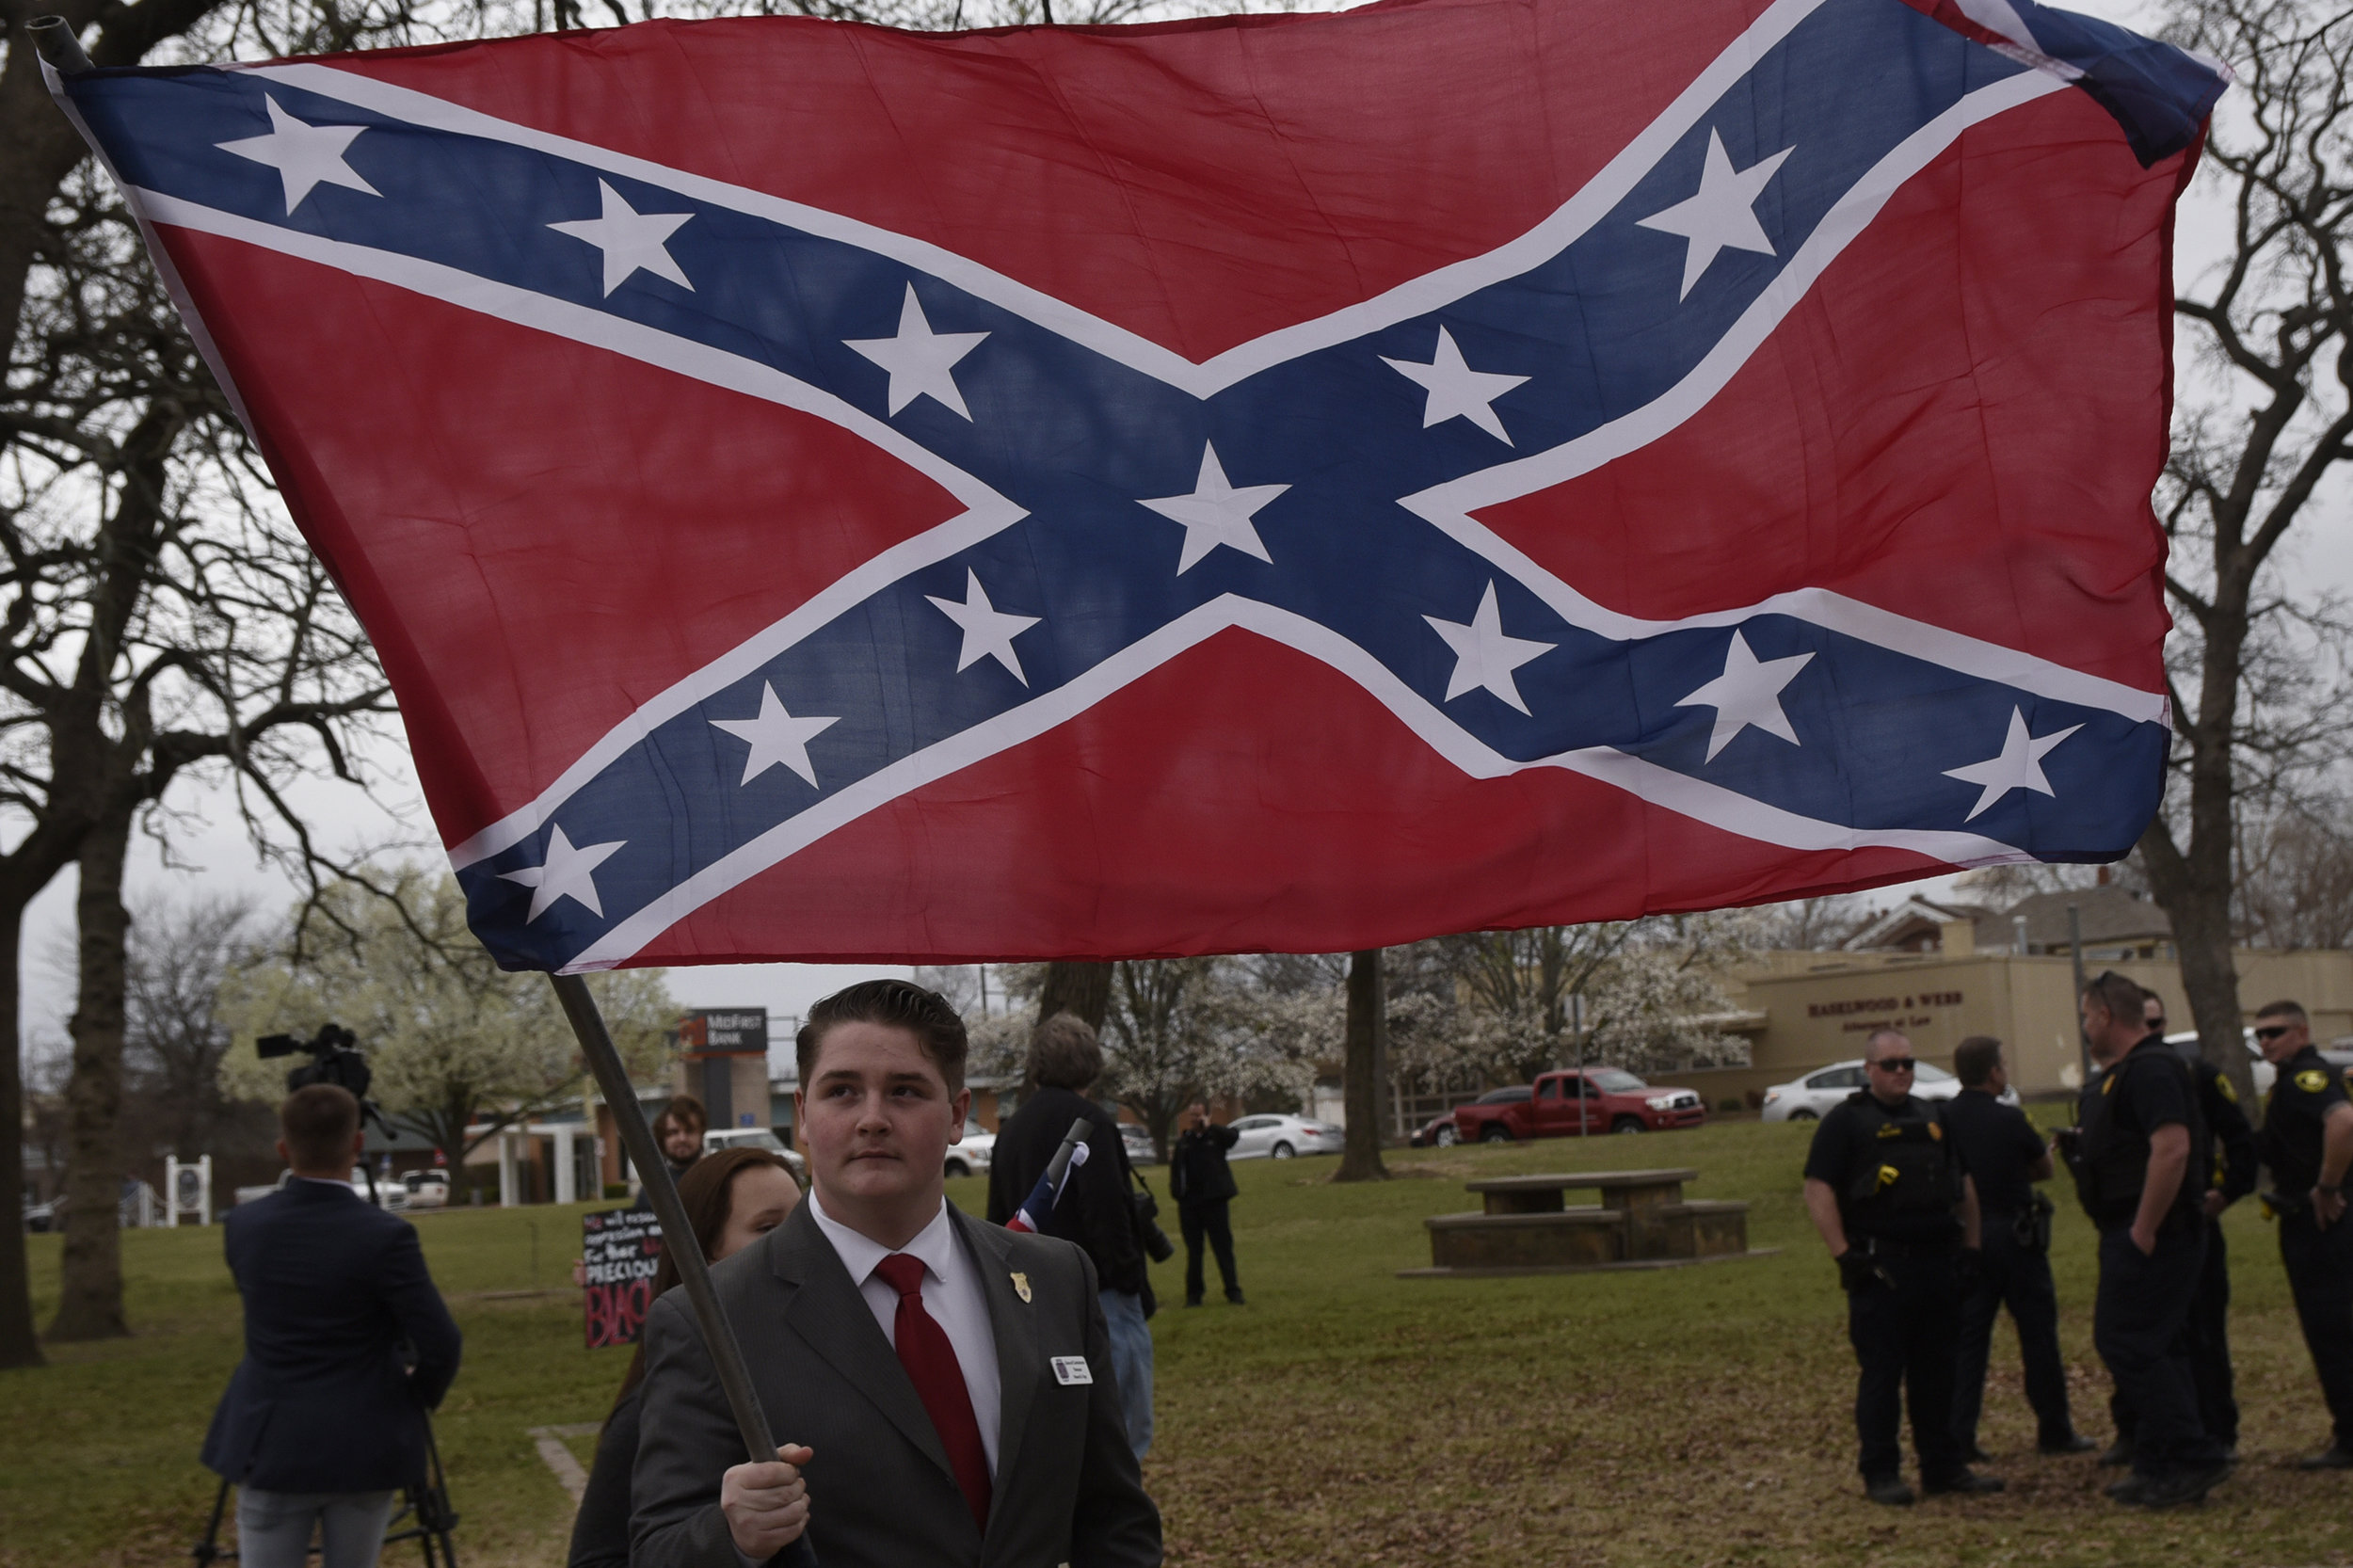 Mason Page displays a Confederate battle flag during a rally held by Sons of Confederate Veterans in Shawnee, Oklahoma, U.S. March 4, 2017. REUTERS/Nick Oxford